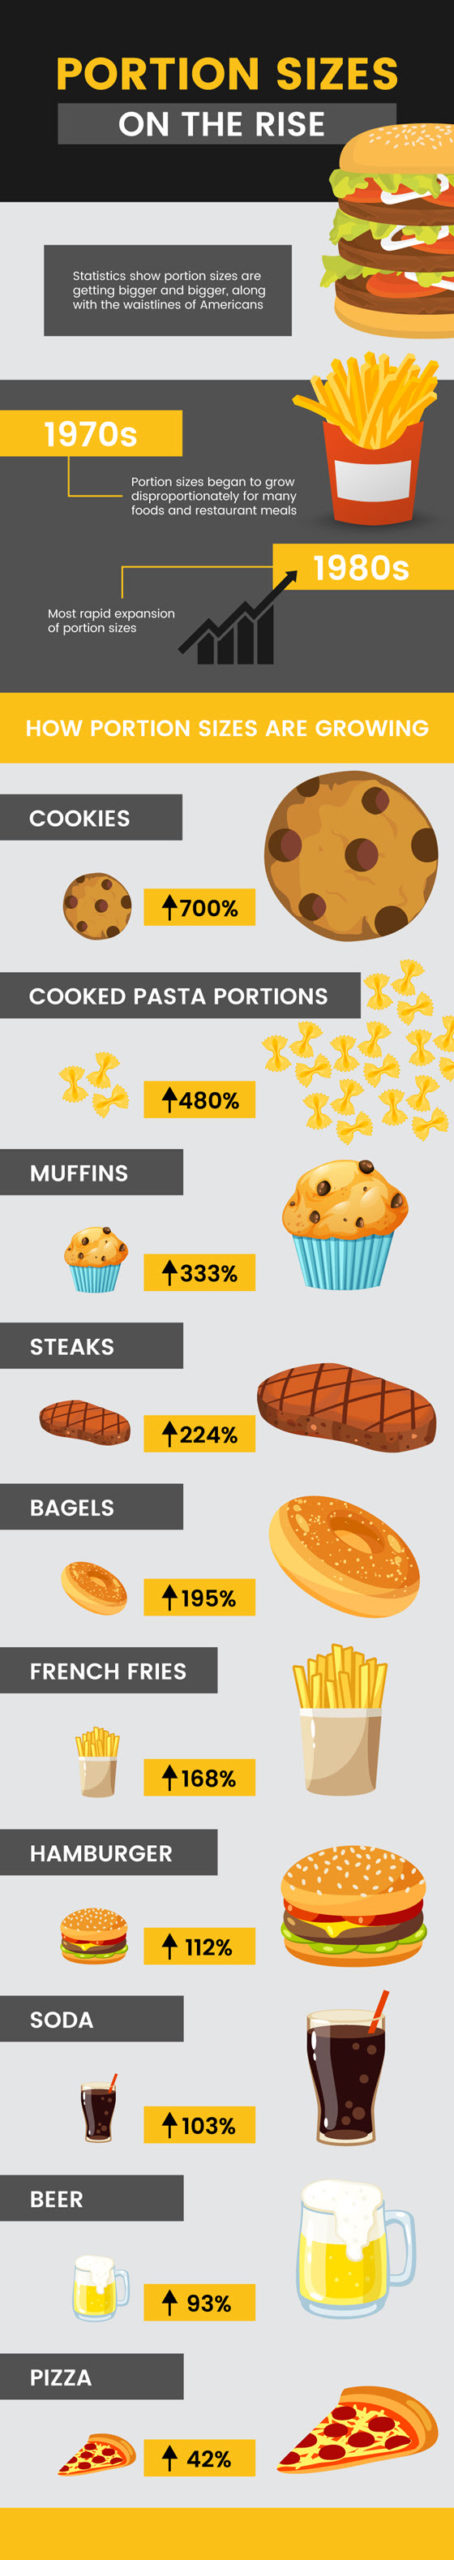 Portion sizes - MKexpress.net